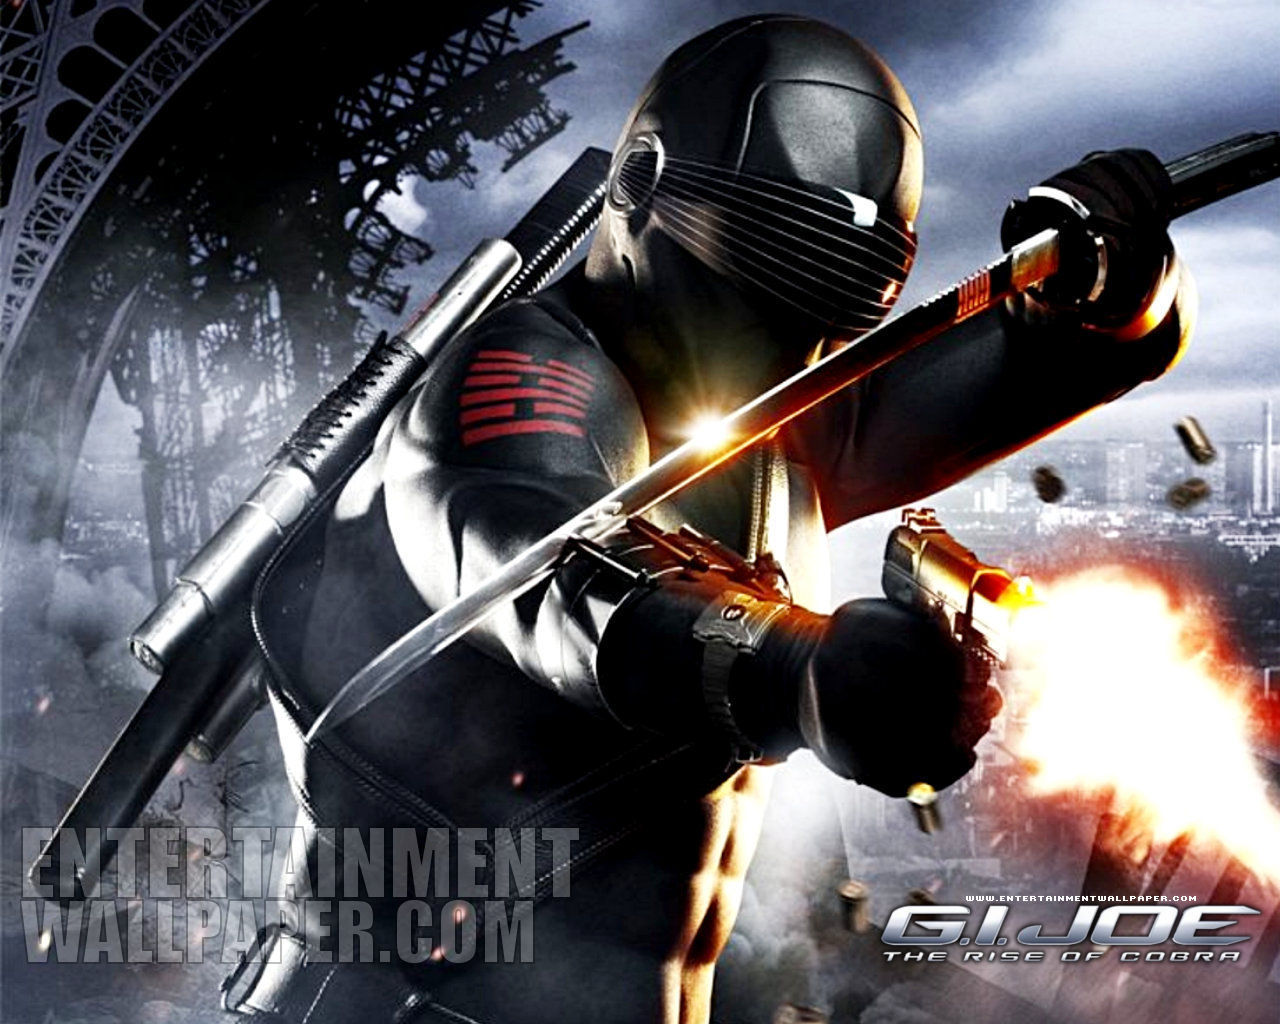 Action Films Images GI Joe Rise Of Cobra HD Wallpaper And Background Photos